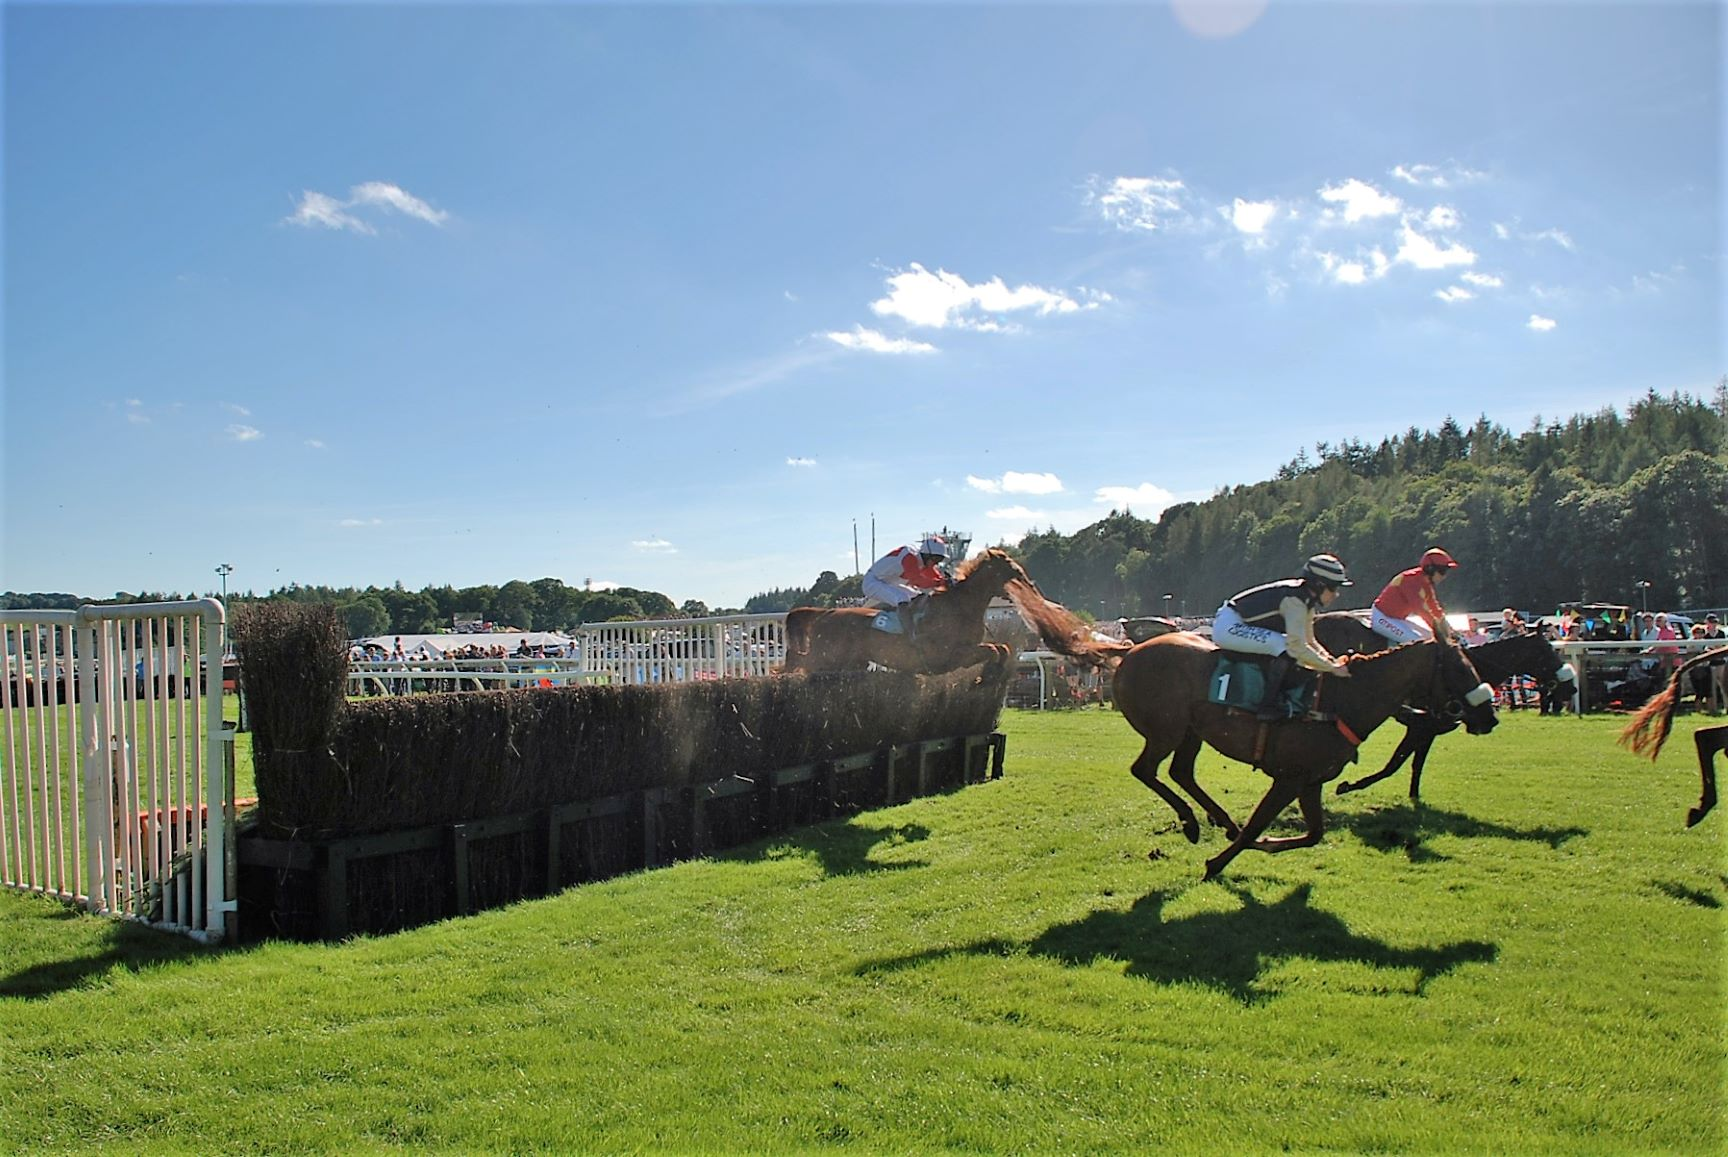 Jumping the fences at Cartmel Races